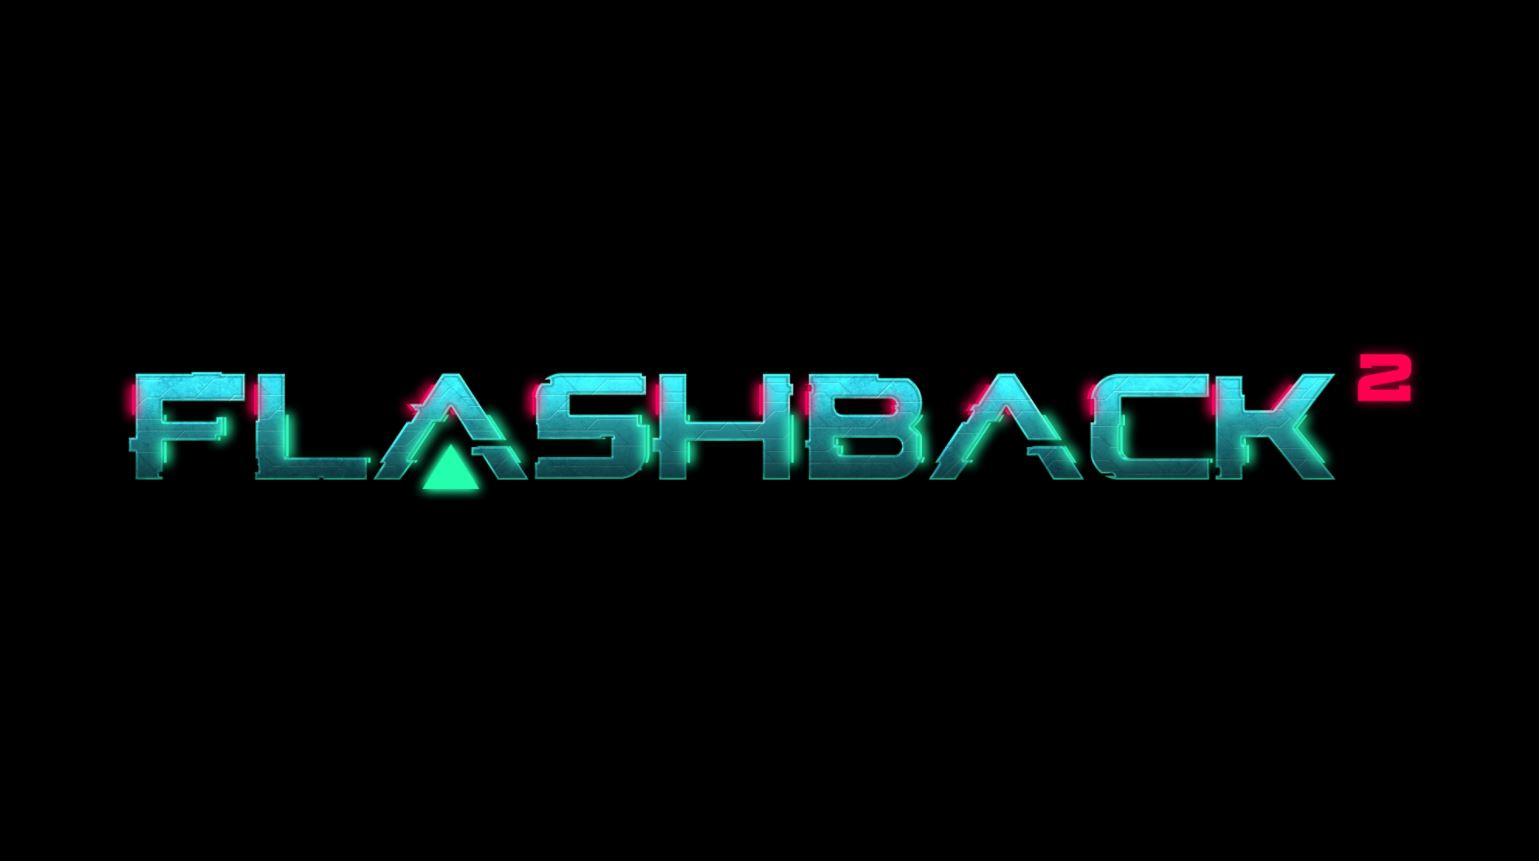 flashback-2-announced-for-2022-release-sequel-to-hit-1990s-classic